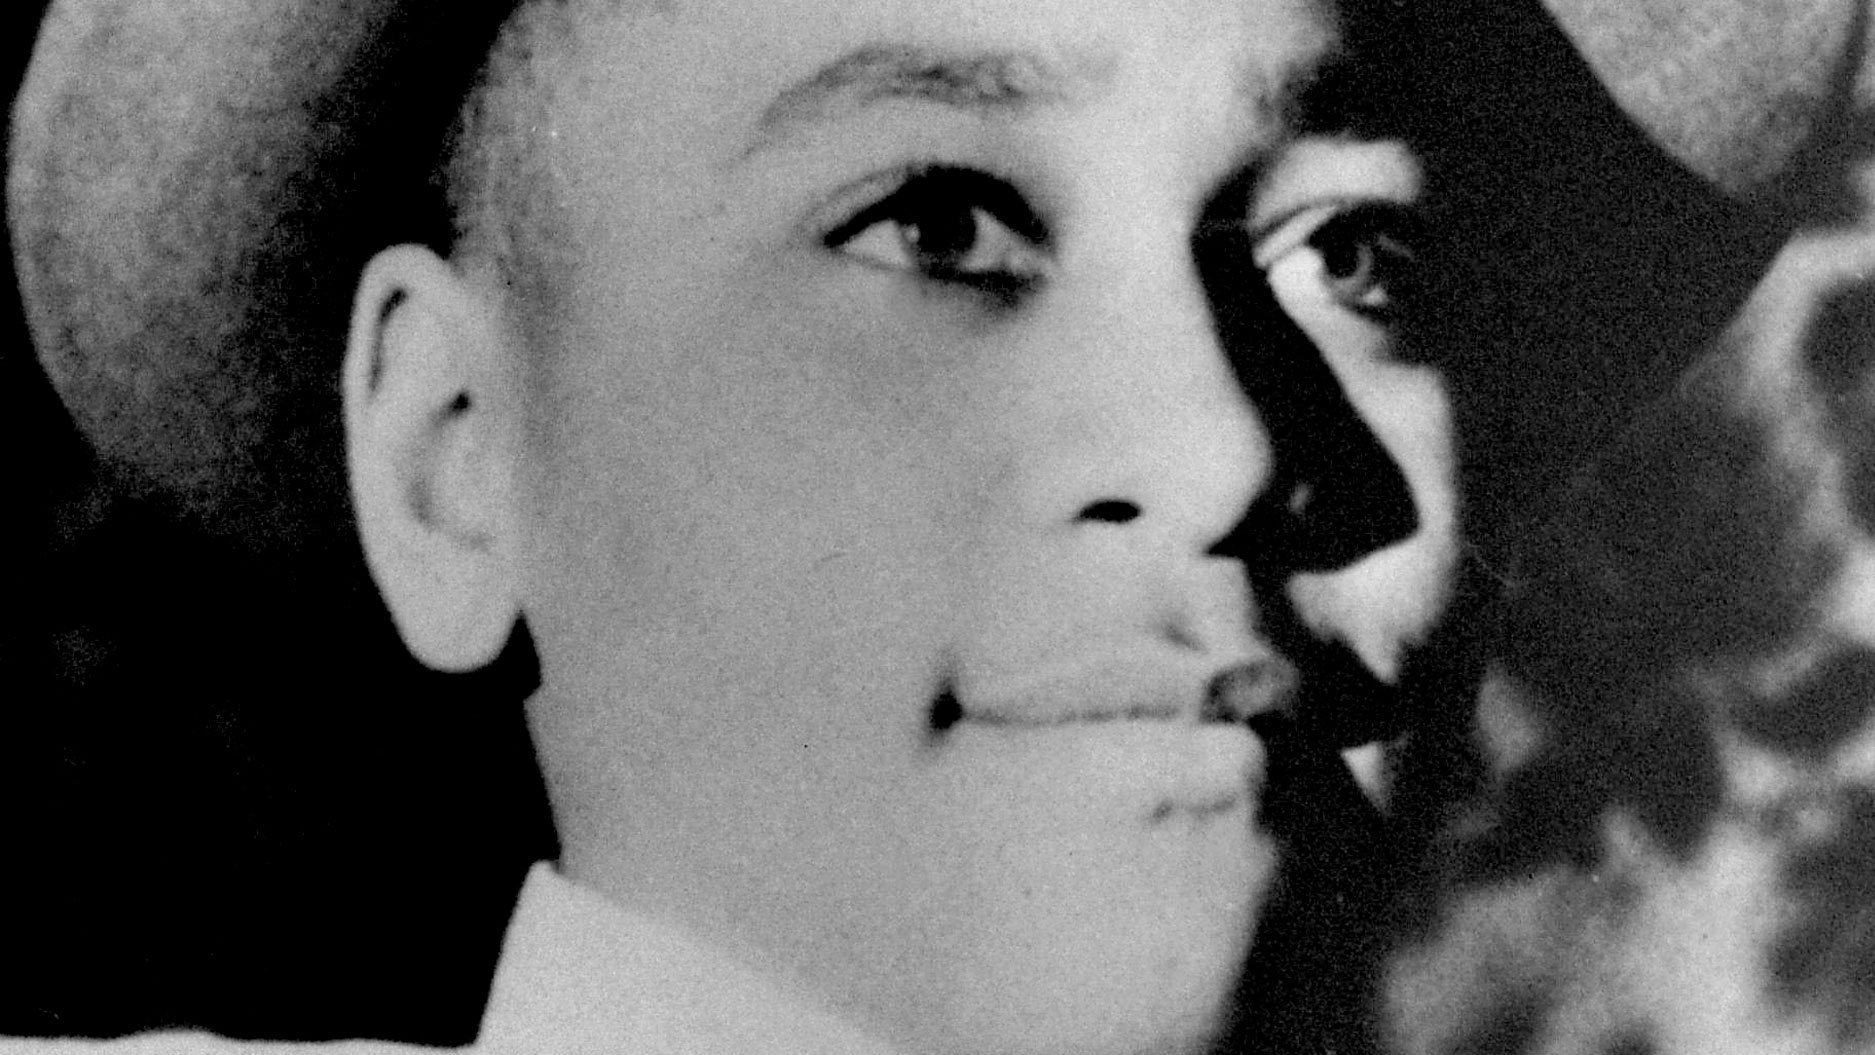 This undated photo shows Emmett Louis Till, a 14-year-old black Chicago boy, who was kidnapped, tortured and murdered in 1955 after he allegedly whistled at a white woman in Mississippi. (Credit: AP via CNN)